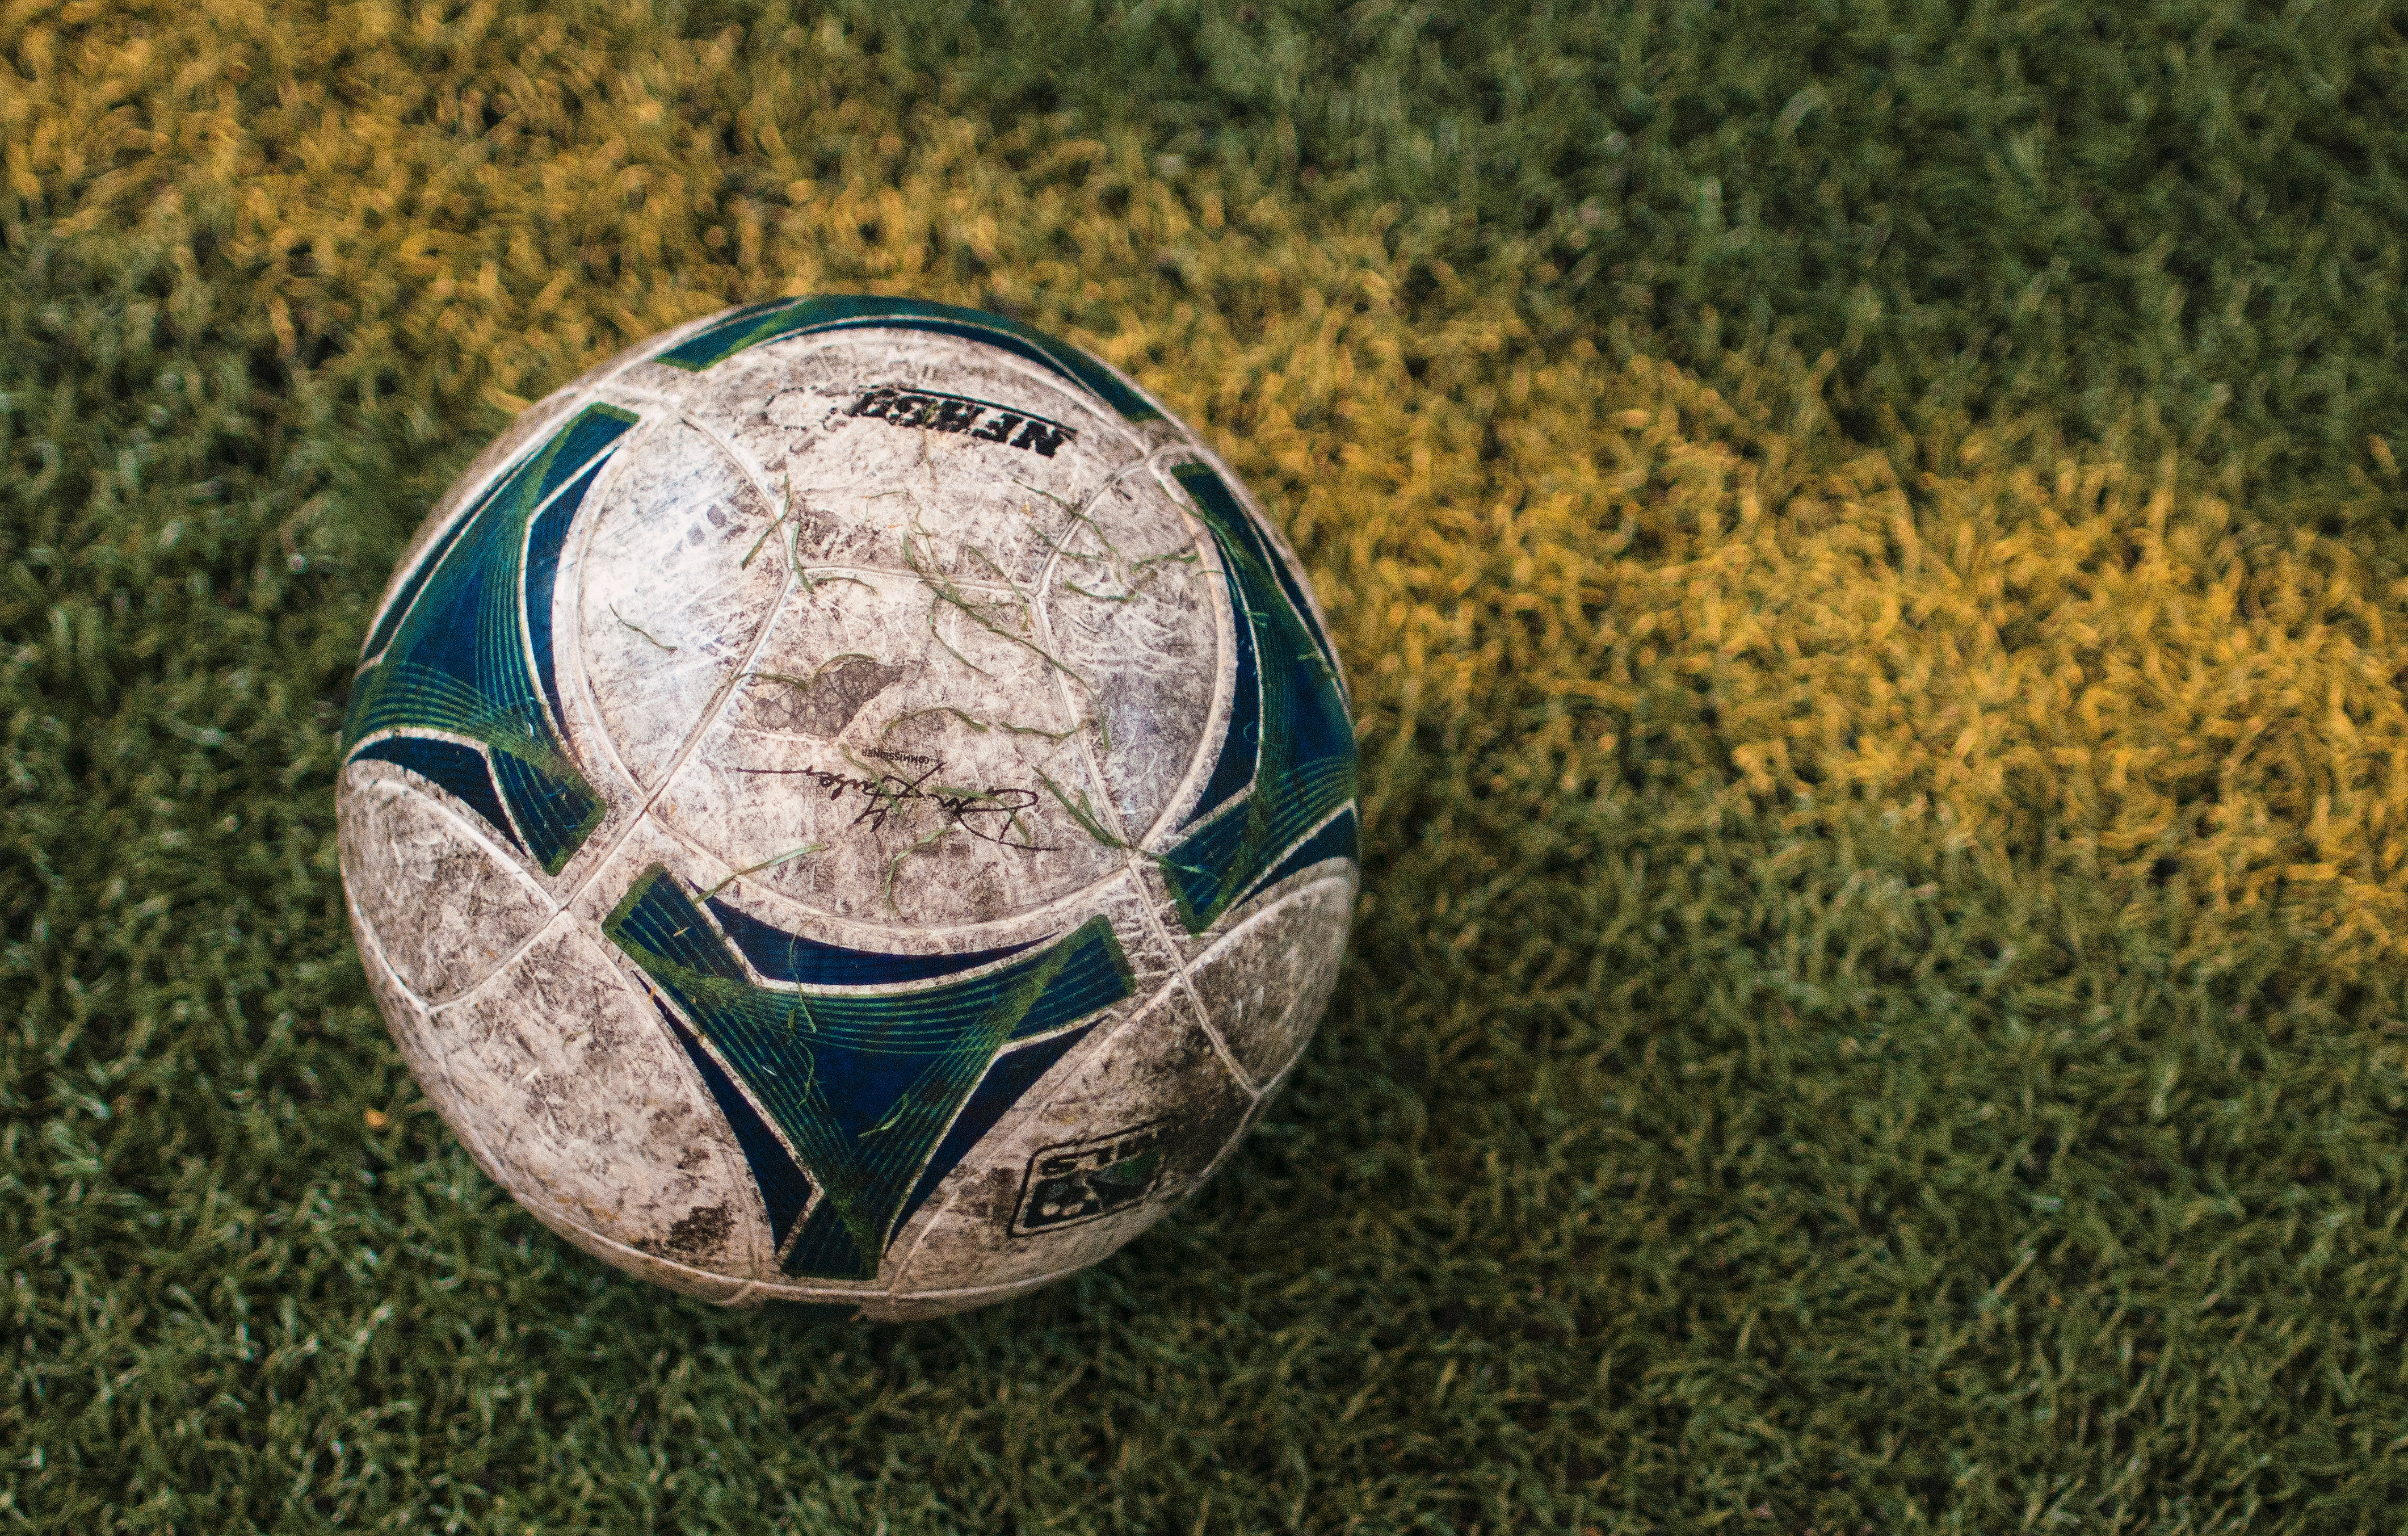 Our Tattered Footballs Taught Us the Importance of Fighting For What We Love